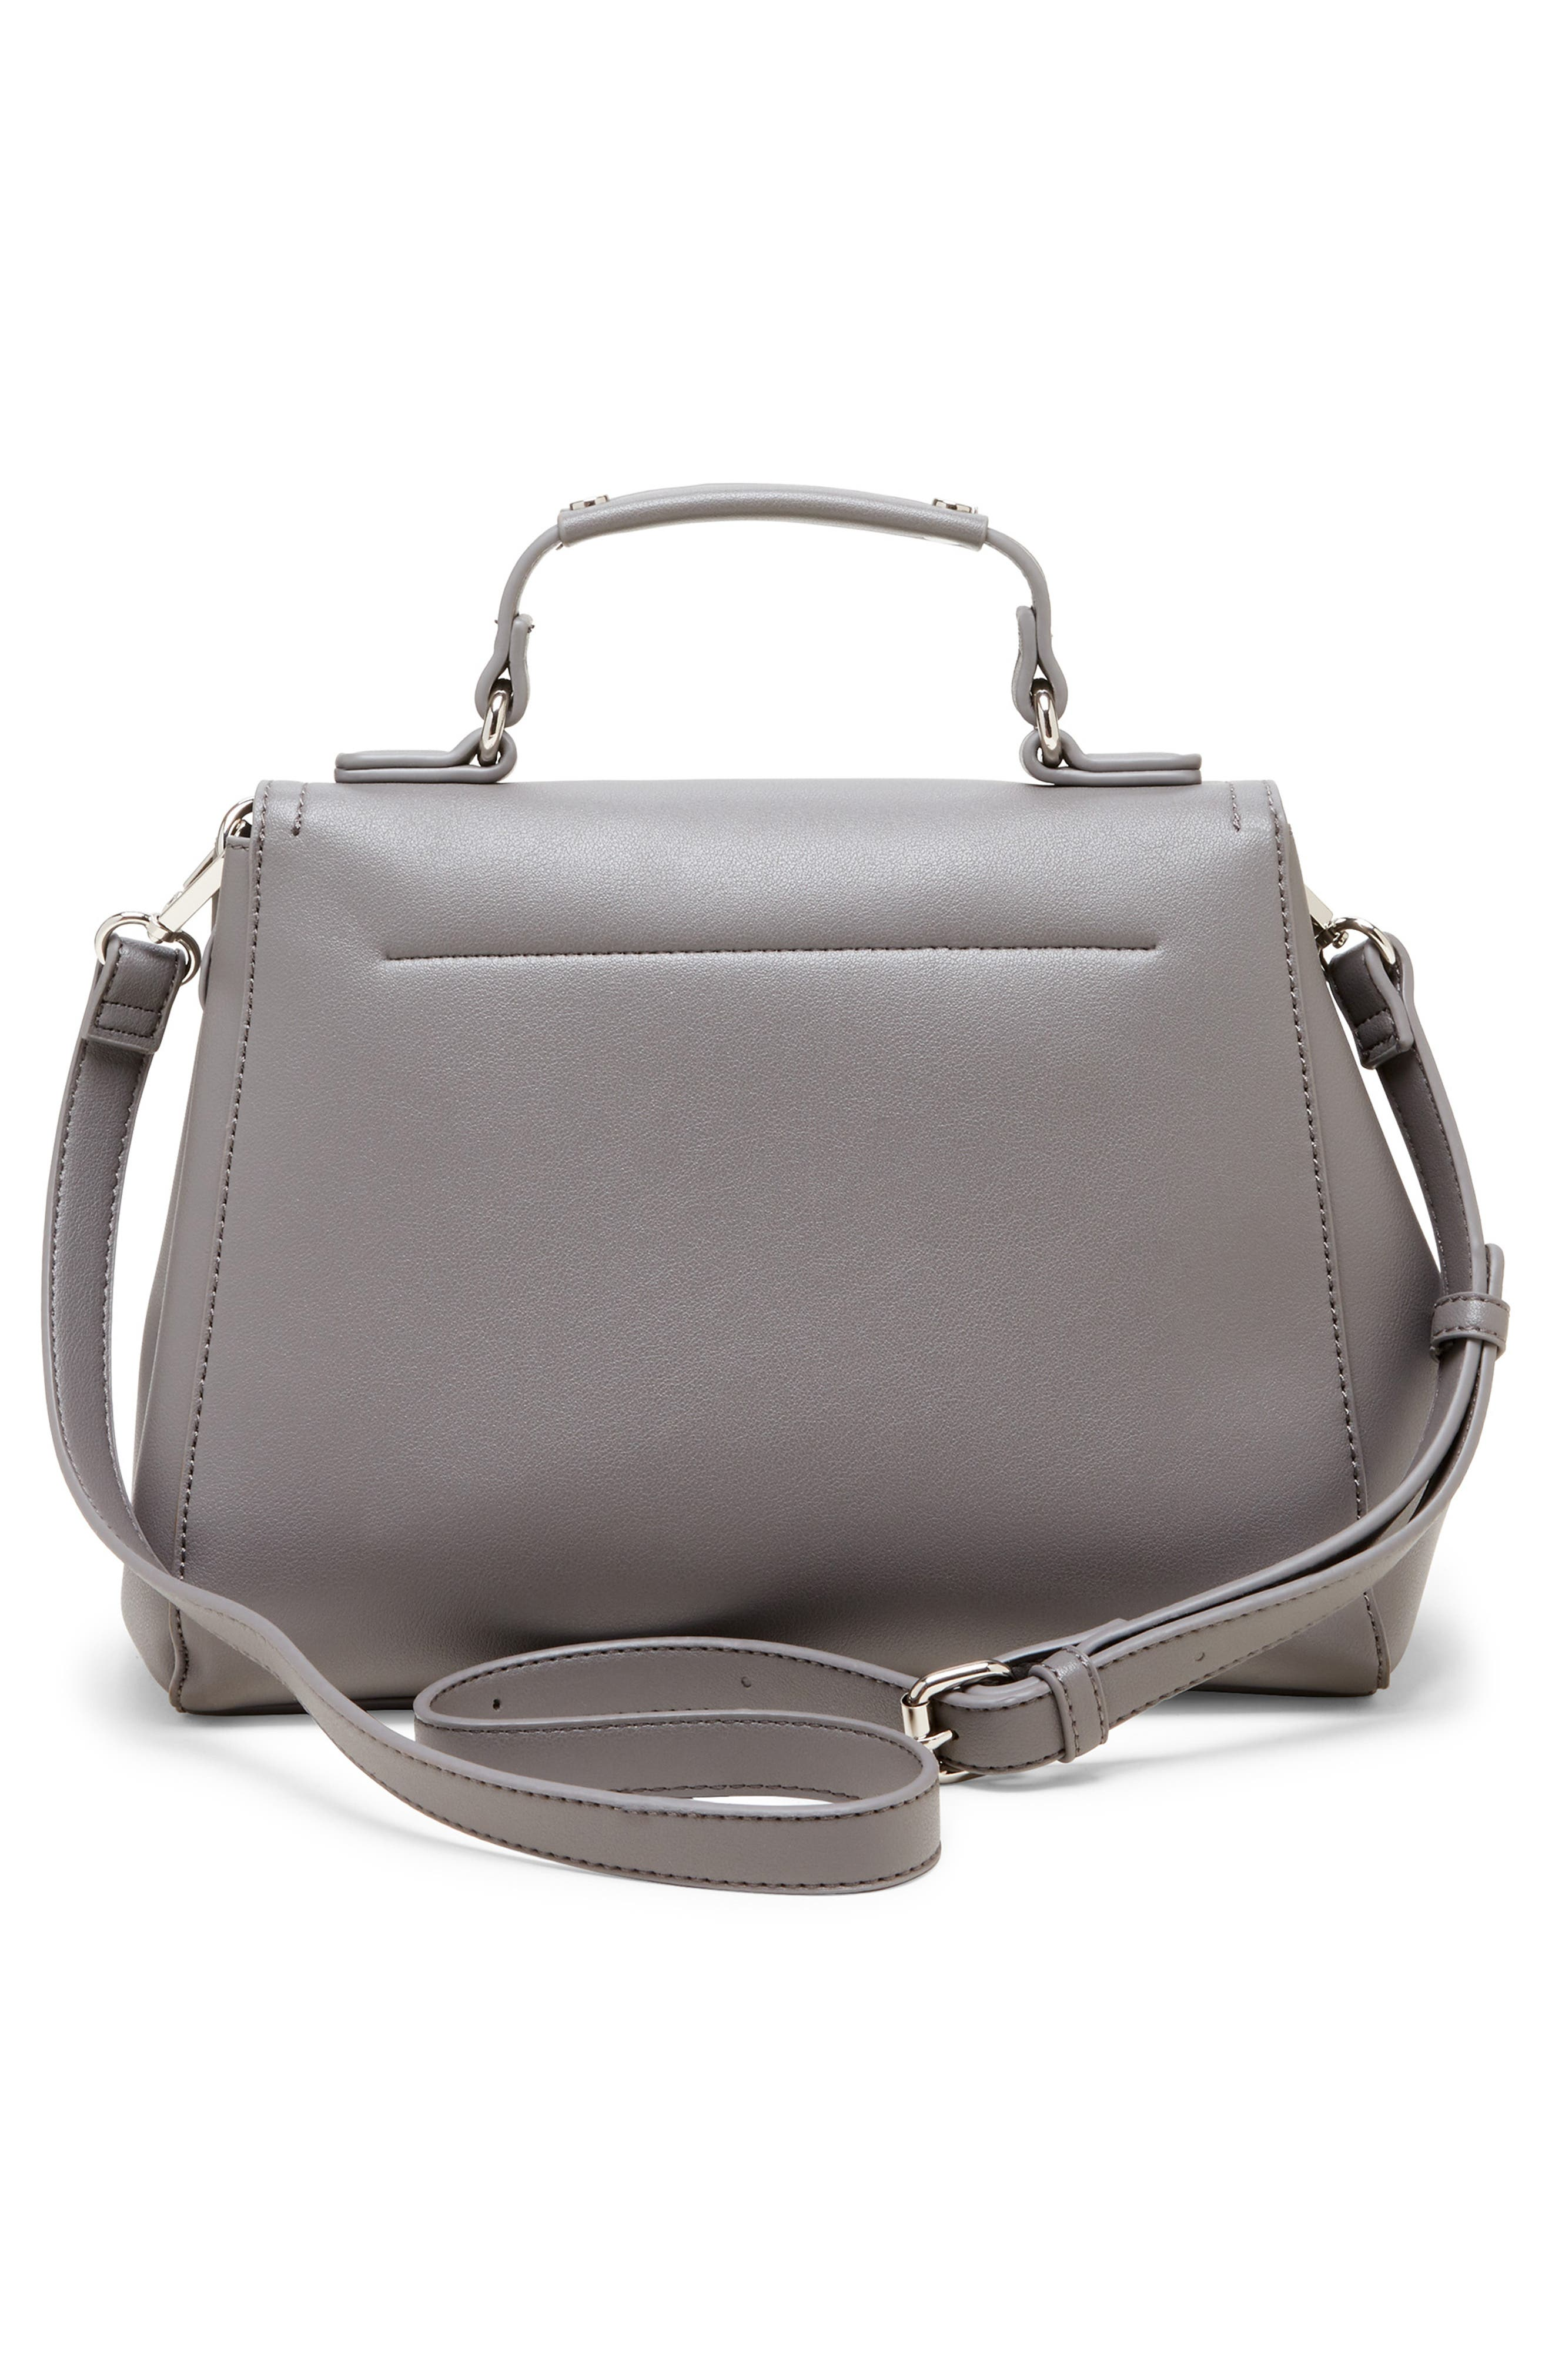 SOLE SOCIETY, Hingi Faux Leather Satchel, Alternate thumbnail 2, color, GREY